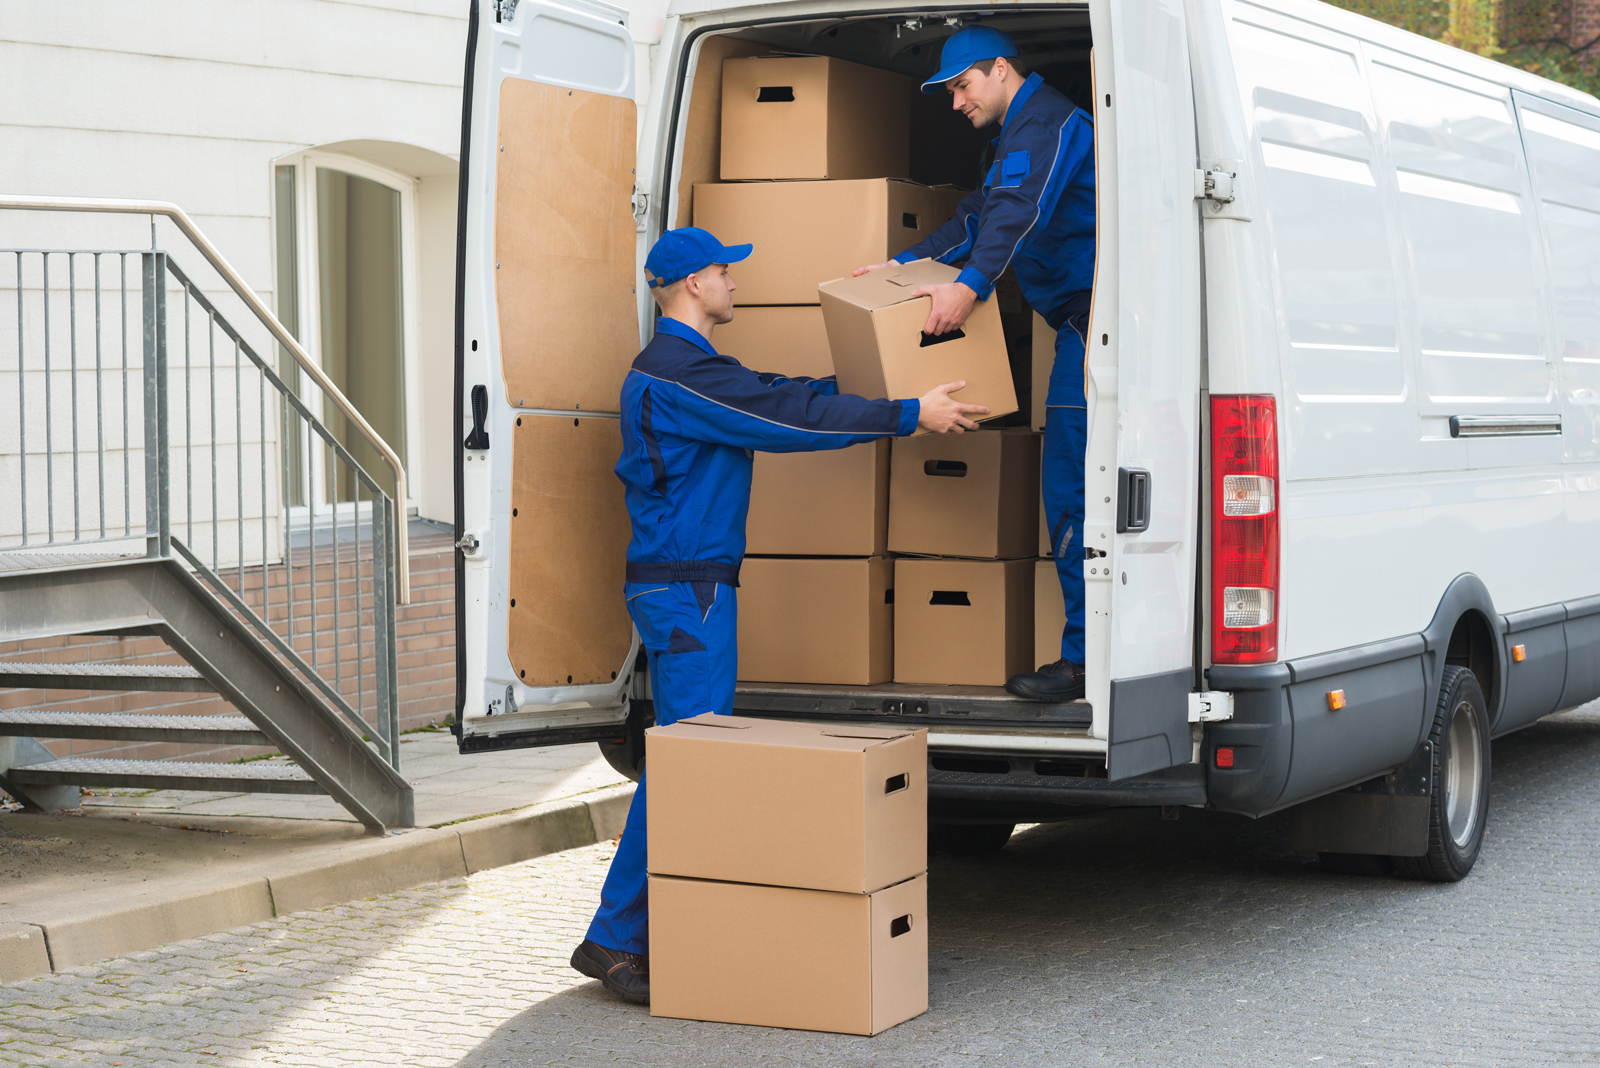 Two couriers unloading large boxes from the back of their van on a delivery